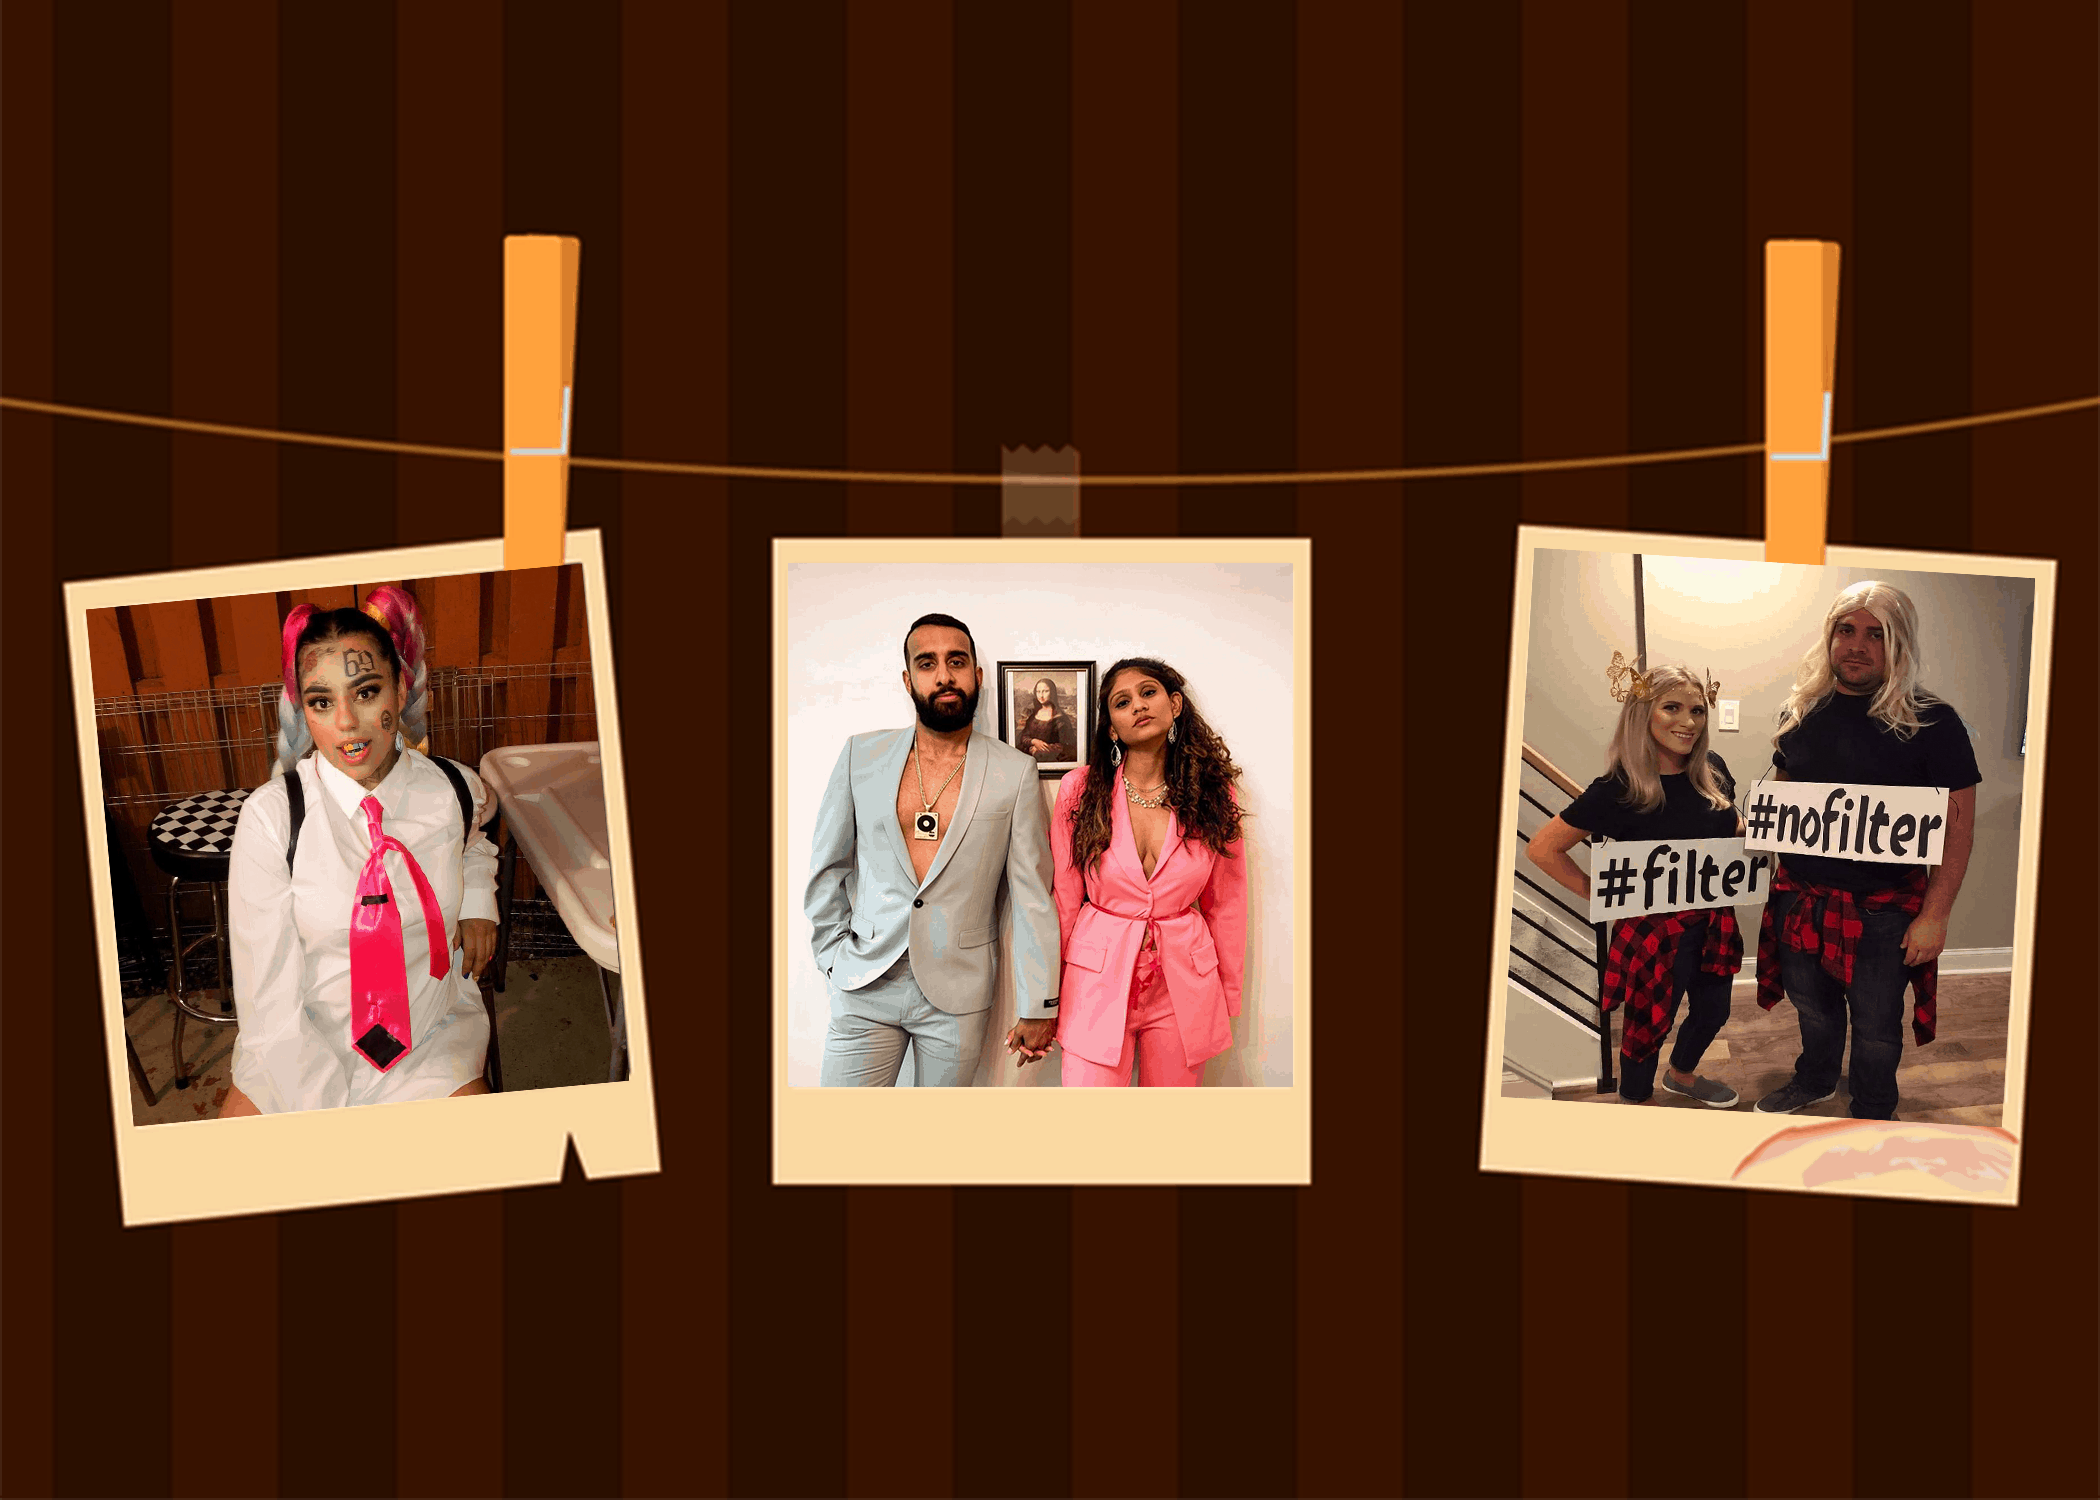 2018 Halloween Costumes based on Pop Culture